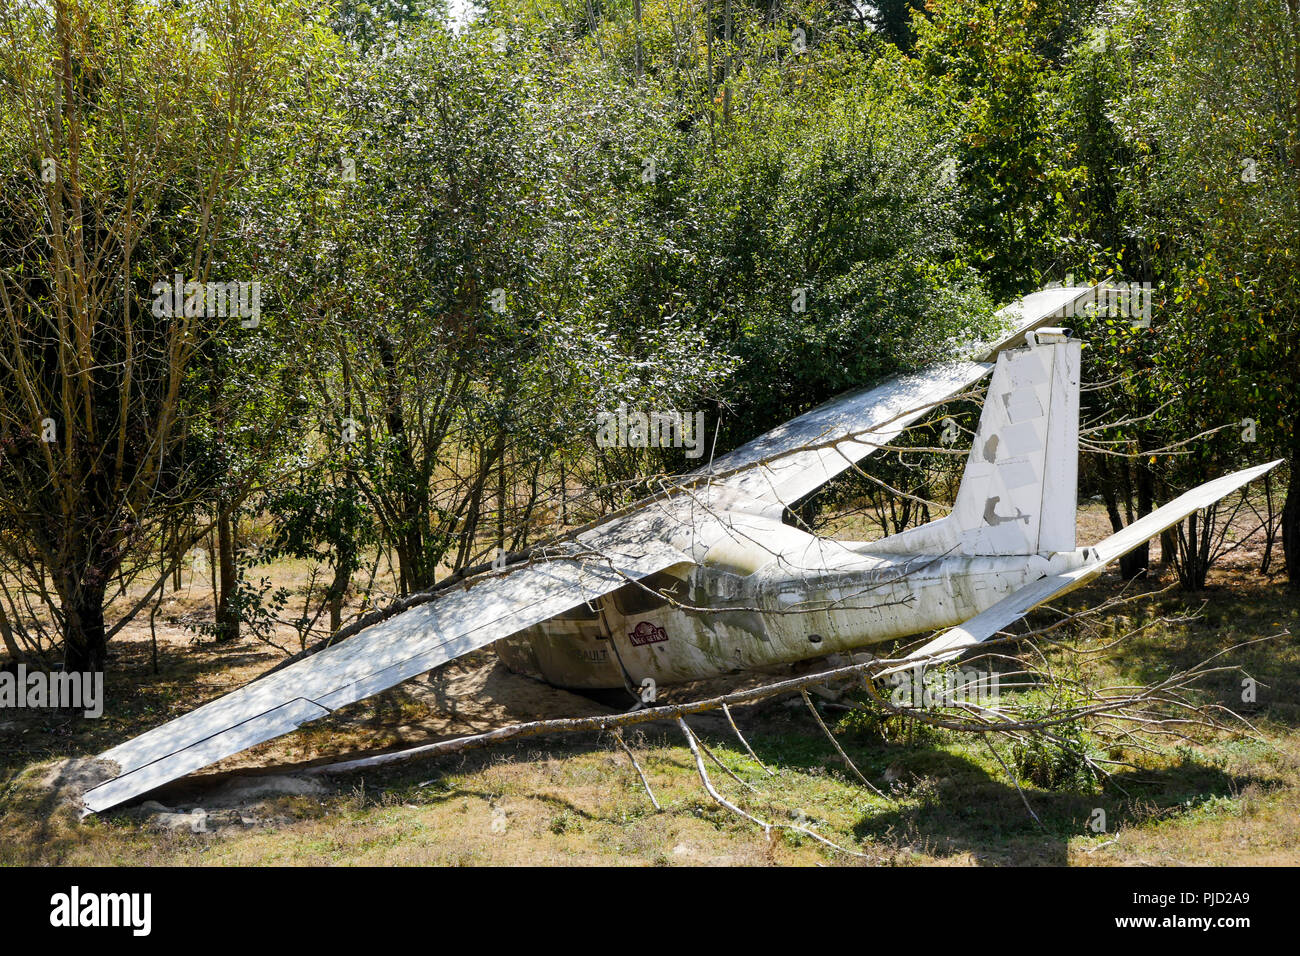 Crashed plane, Birds Park, Villars Les Dombes, France Stock Photo